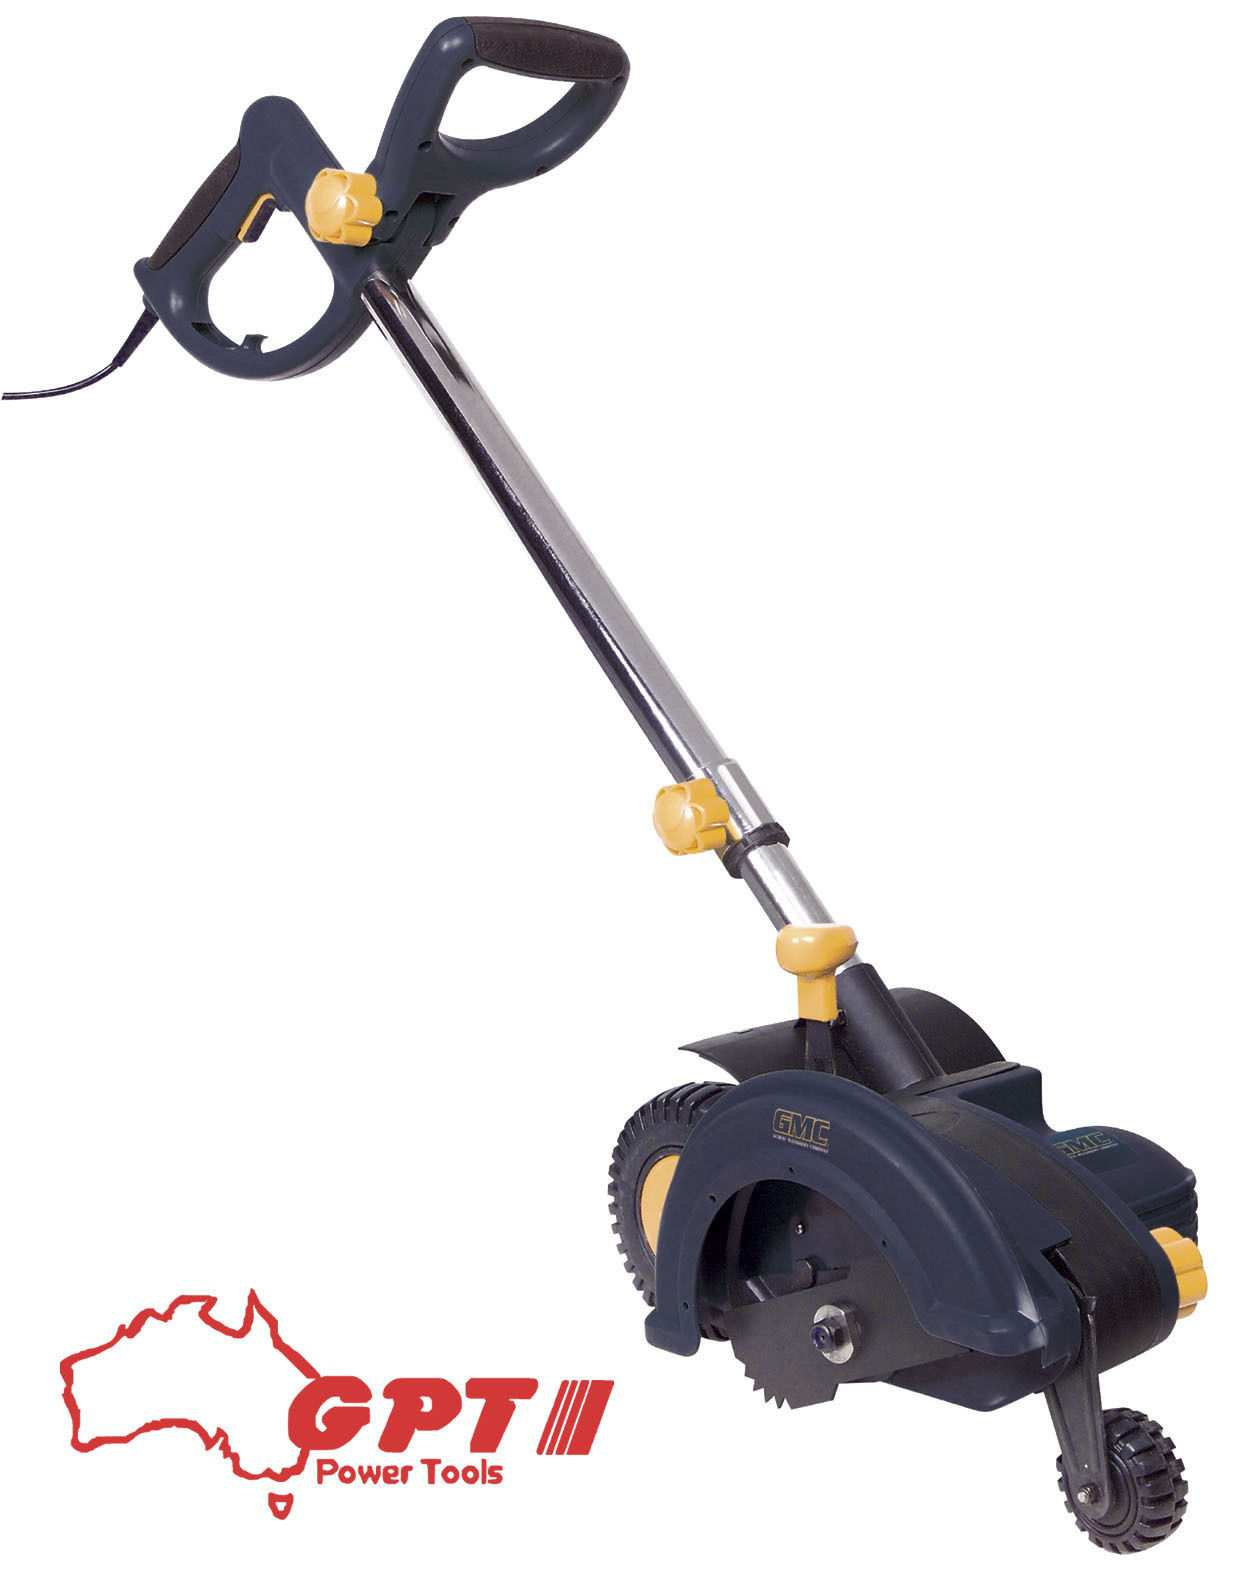 1400W ELECTRIC LAWN EDGER | 38MM CUT | LIGHTWEIGHT  | GARDEN TRIMMER